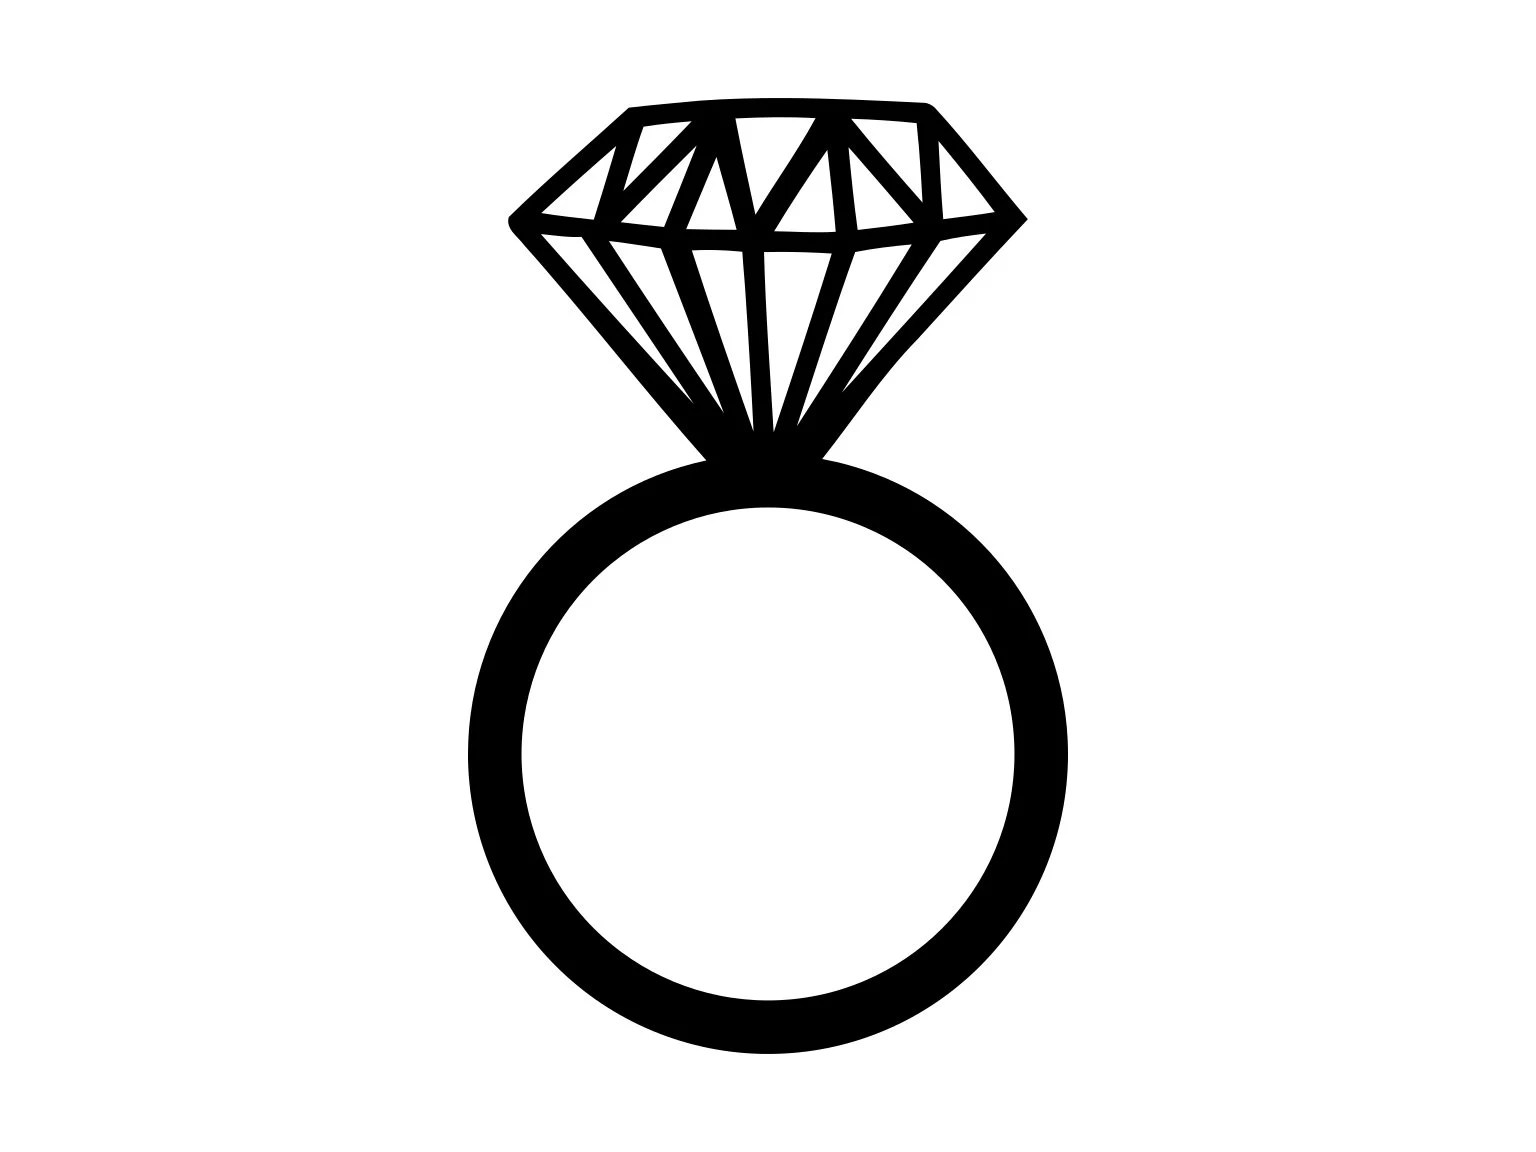 Diamond Ring Svg Silhouette Cutting File Clipart